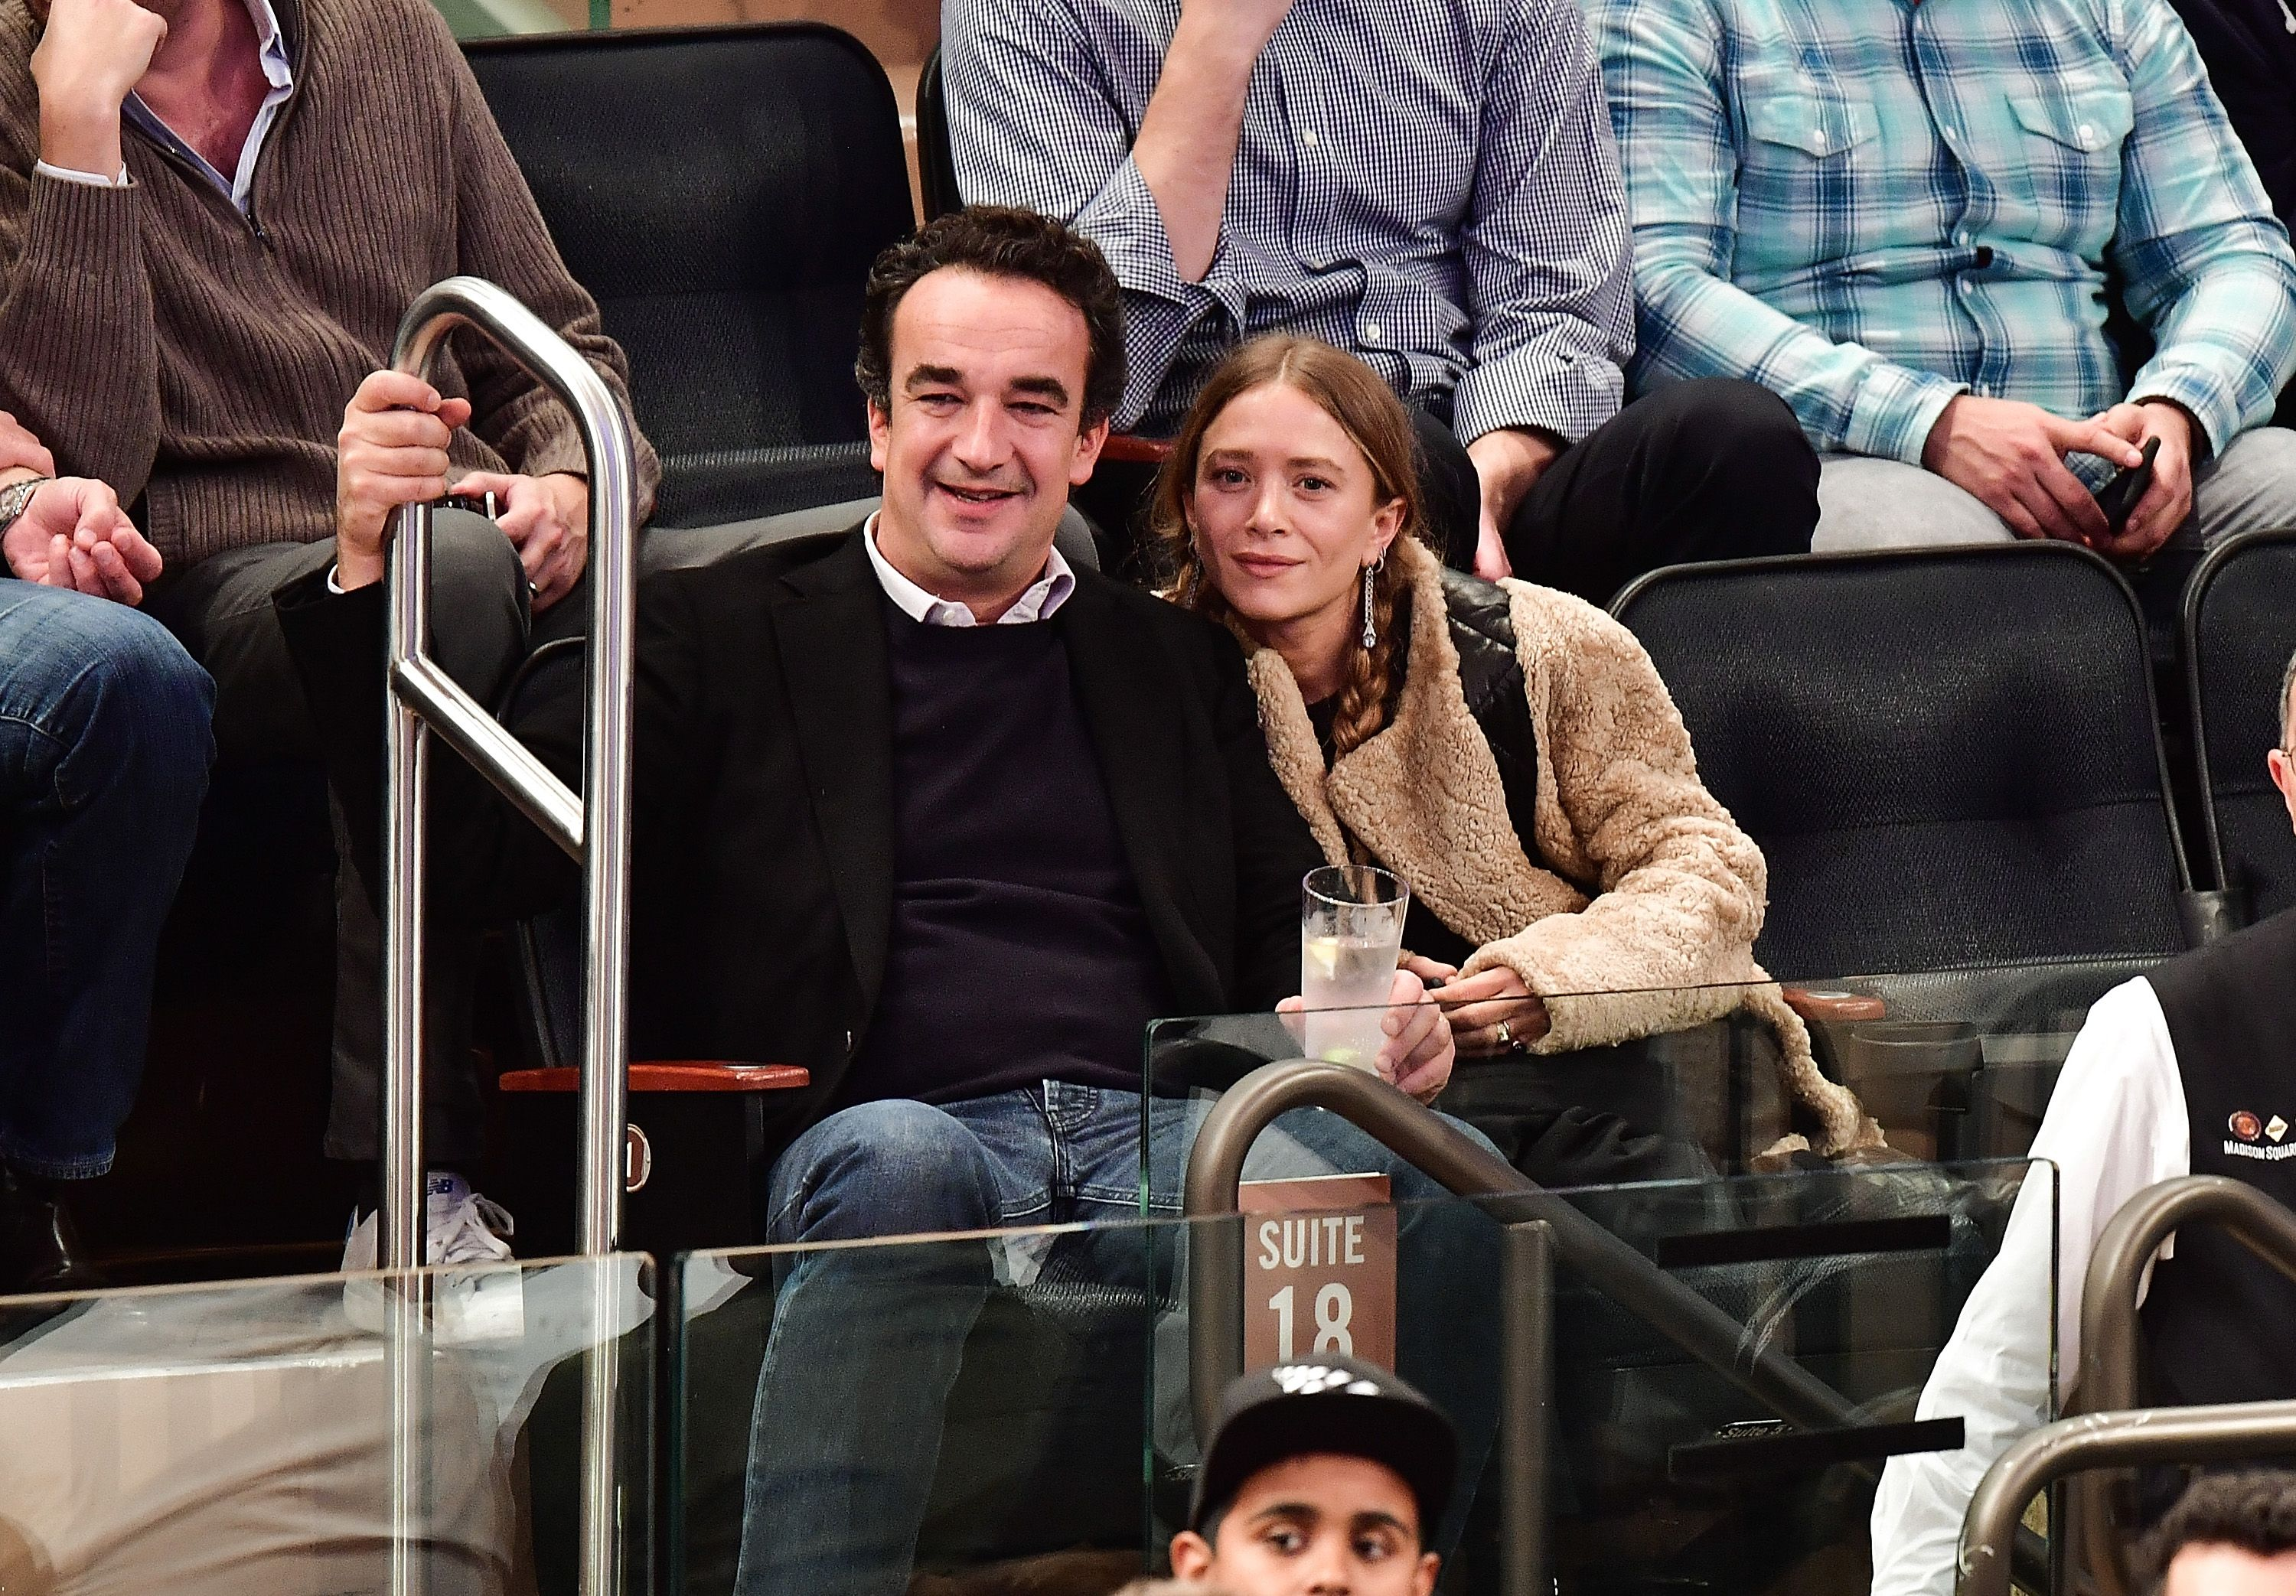 NEW YORK, NY - NOVEMBER 09: (EXCLUSIVE COVERAGE PREMIUM RATES APPLY) Olivier Sarkozy and Mary-Kate Olsen attend New York Knicks vs Brooklyn Nets game at Madison Square Garden on November 9, 2016 in New York City. (Photo by James Devaney/GC Images)